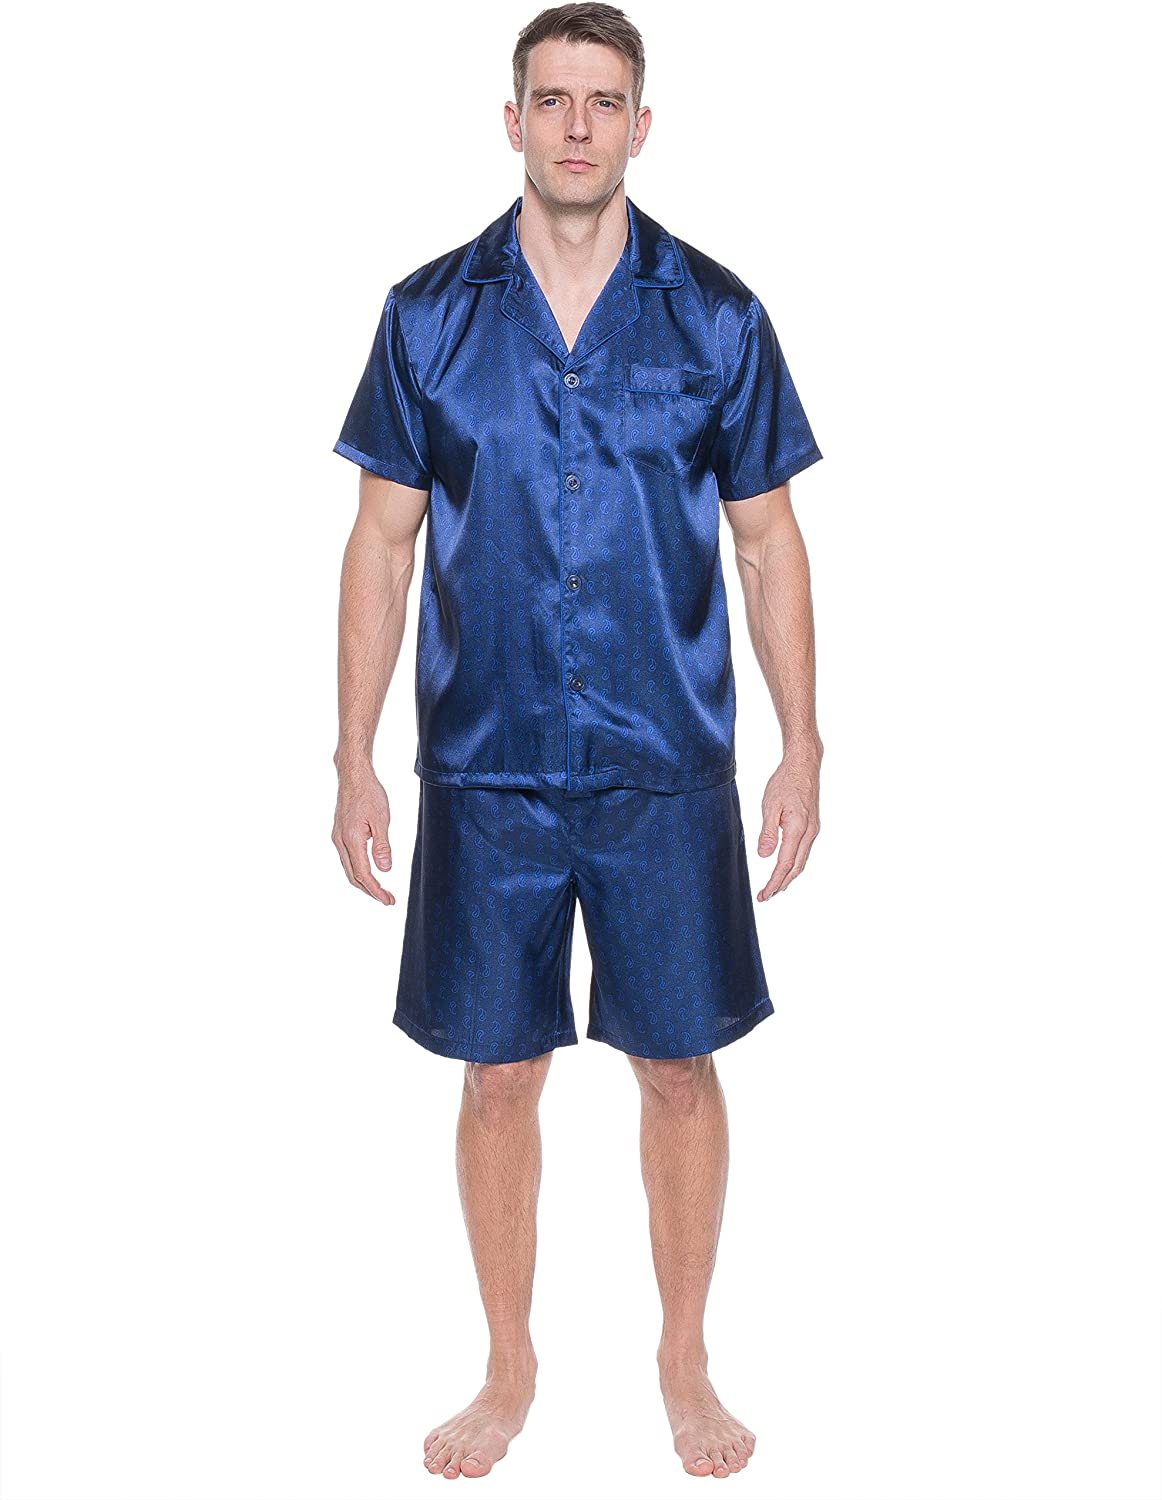 Noble Mount Twin Boat Mens Satin Short Sleepwear/Pajama Set